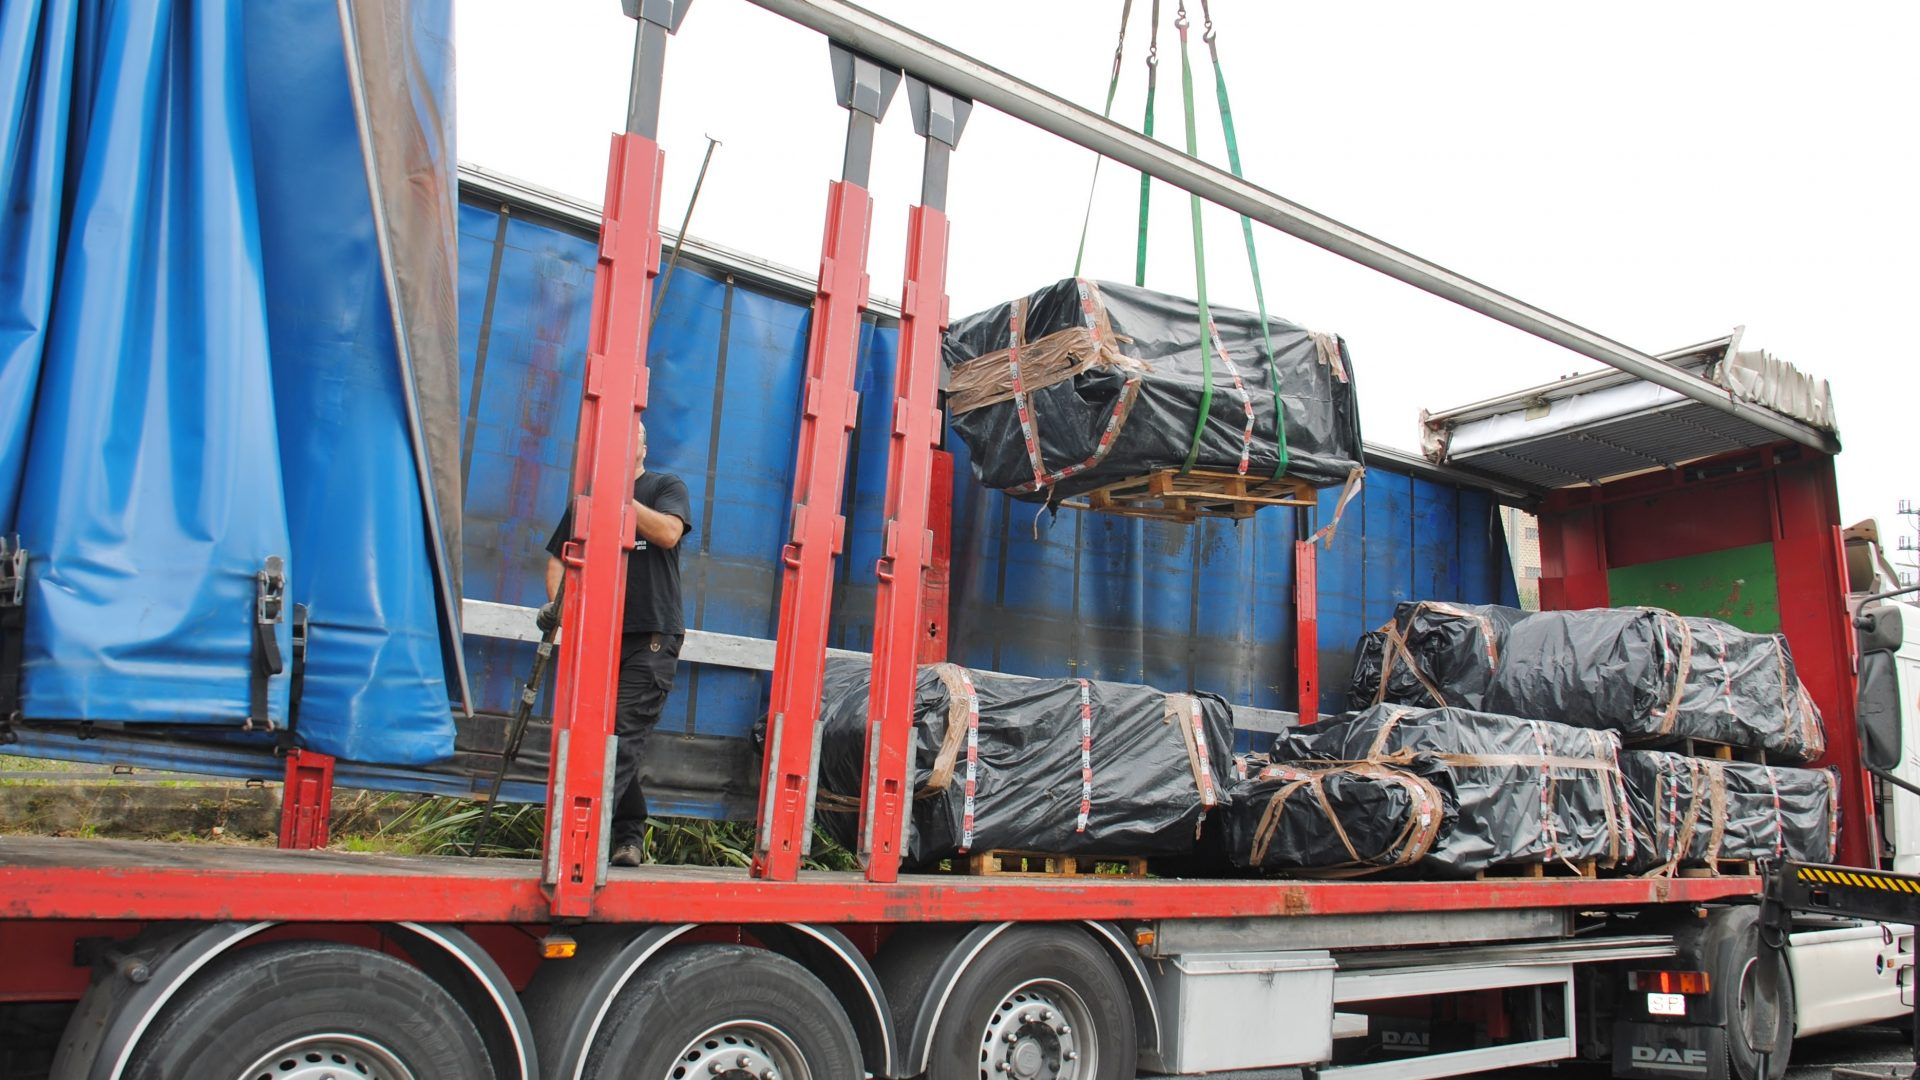 Sourced contaminated scrap metal